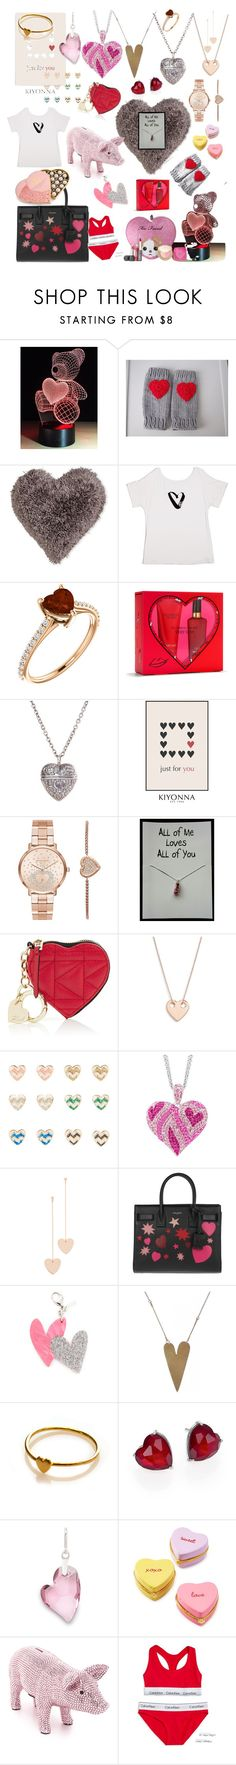 """""""Valentine's gifts any girl would love!"""" by breakfastatiffanies22 ❤ liked on Polyvore featuring Nourison, Vera Bradley, Victoria's Secret, Kiyonna, Michael Kors, Karl Lagerfeld, Ginette NY, Cloverpost, Yves Saint Laurent and Edie Parker"""